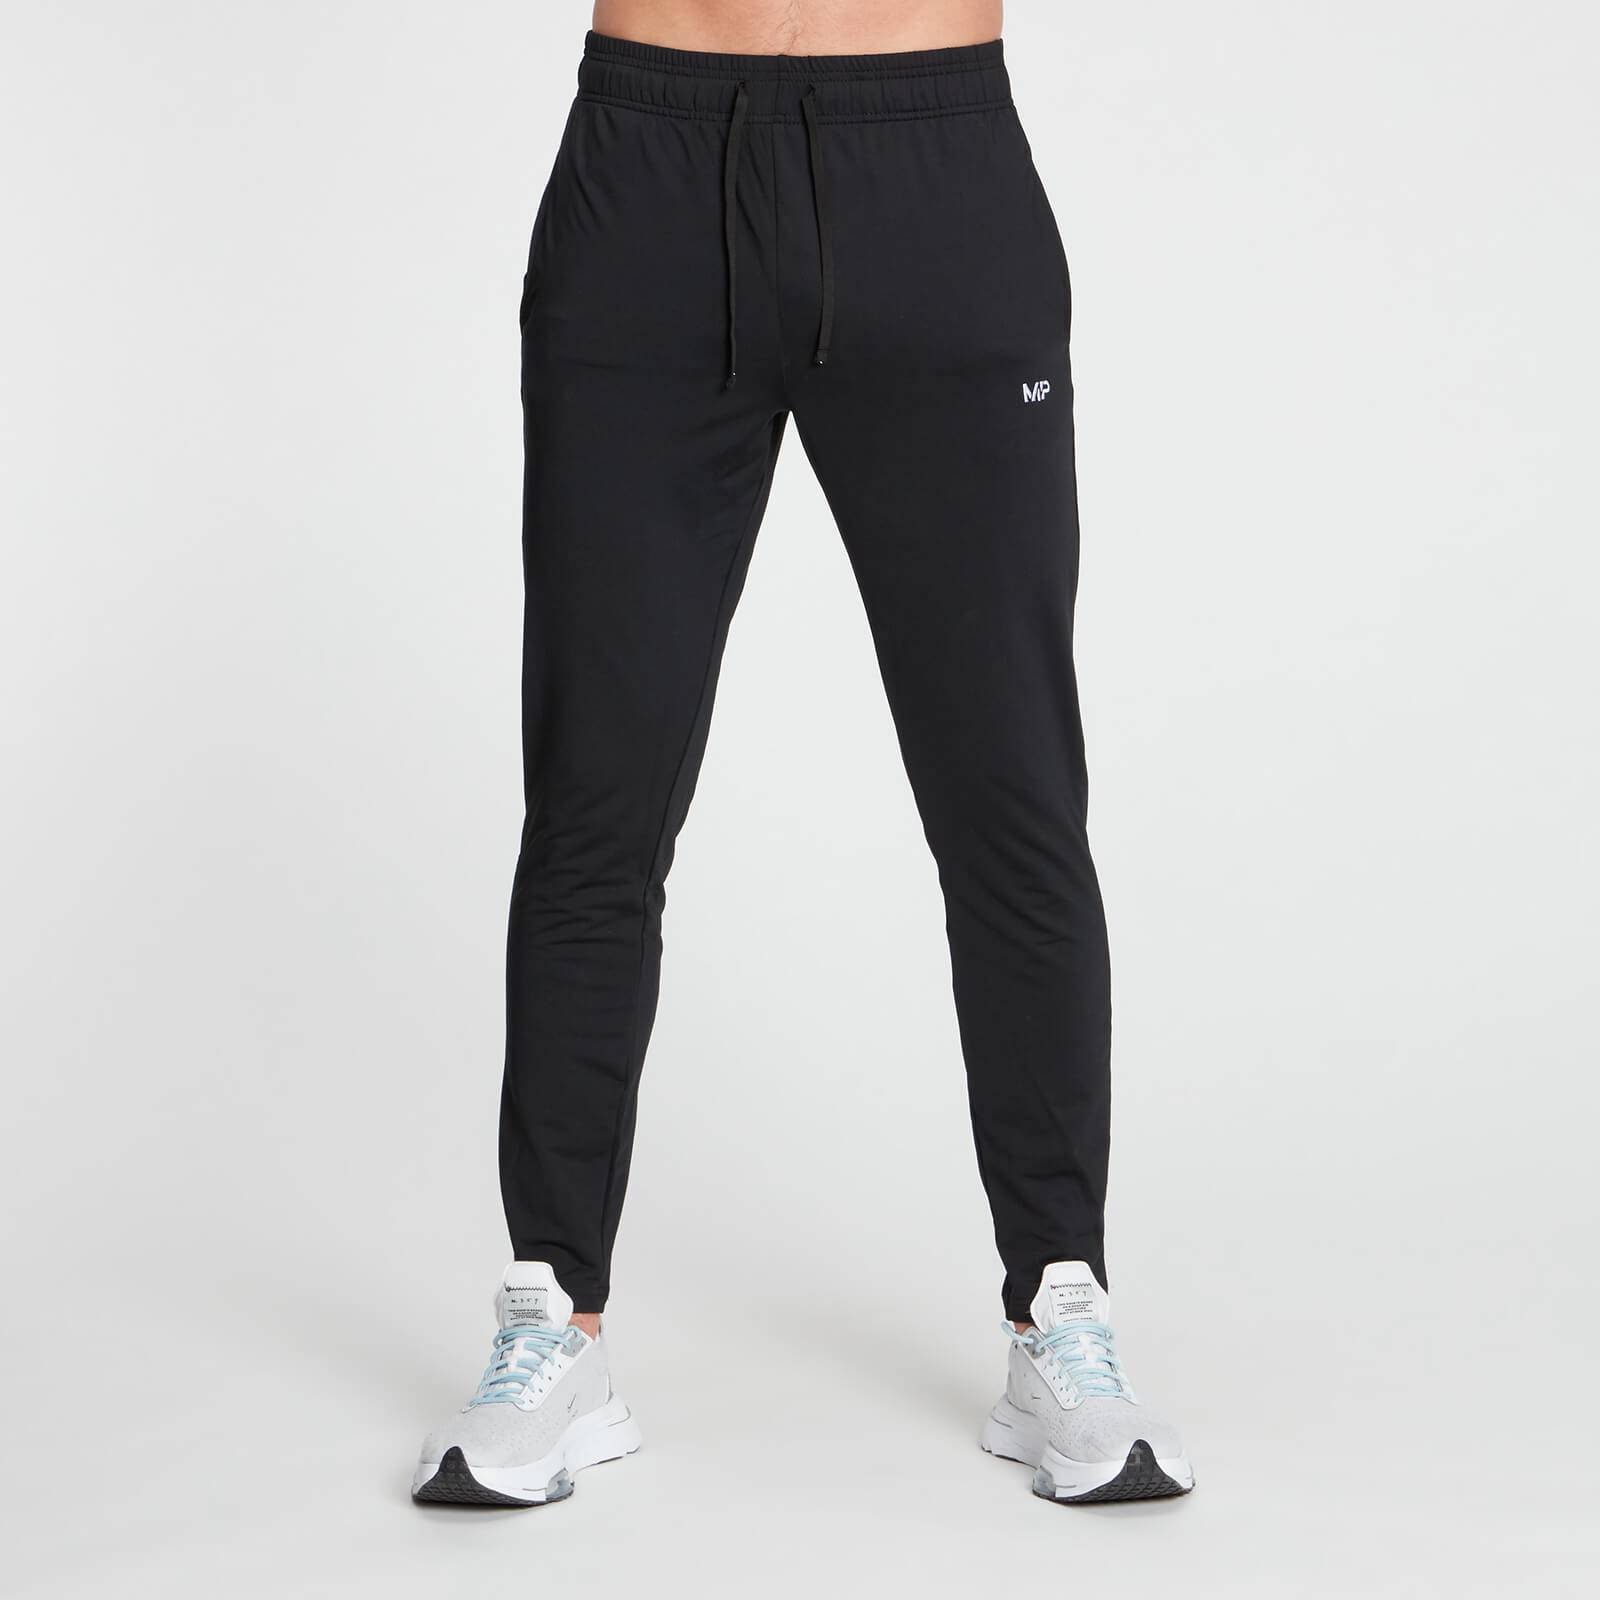 Myprotein MP Men's Essentials Training Joggers — Black  - M